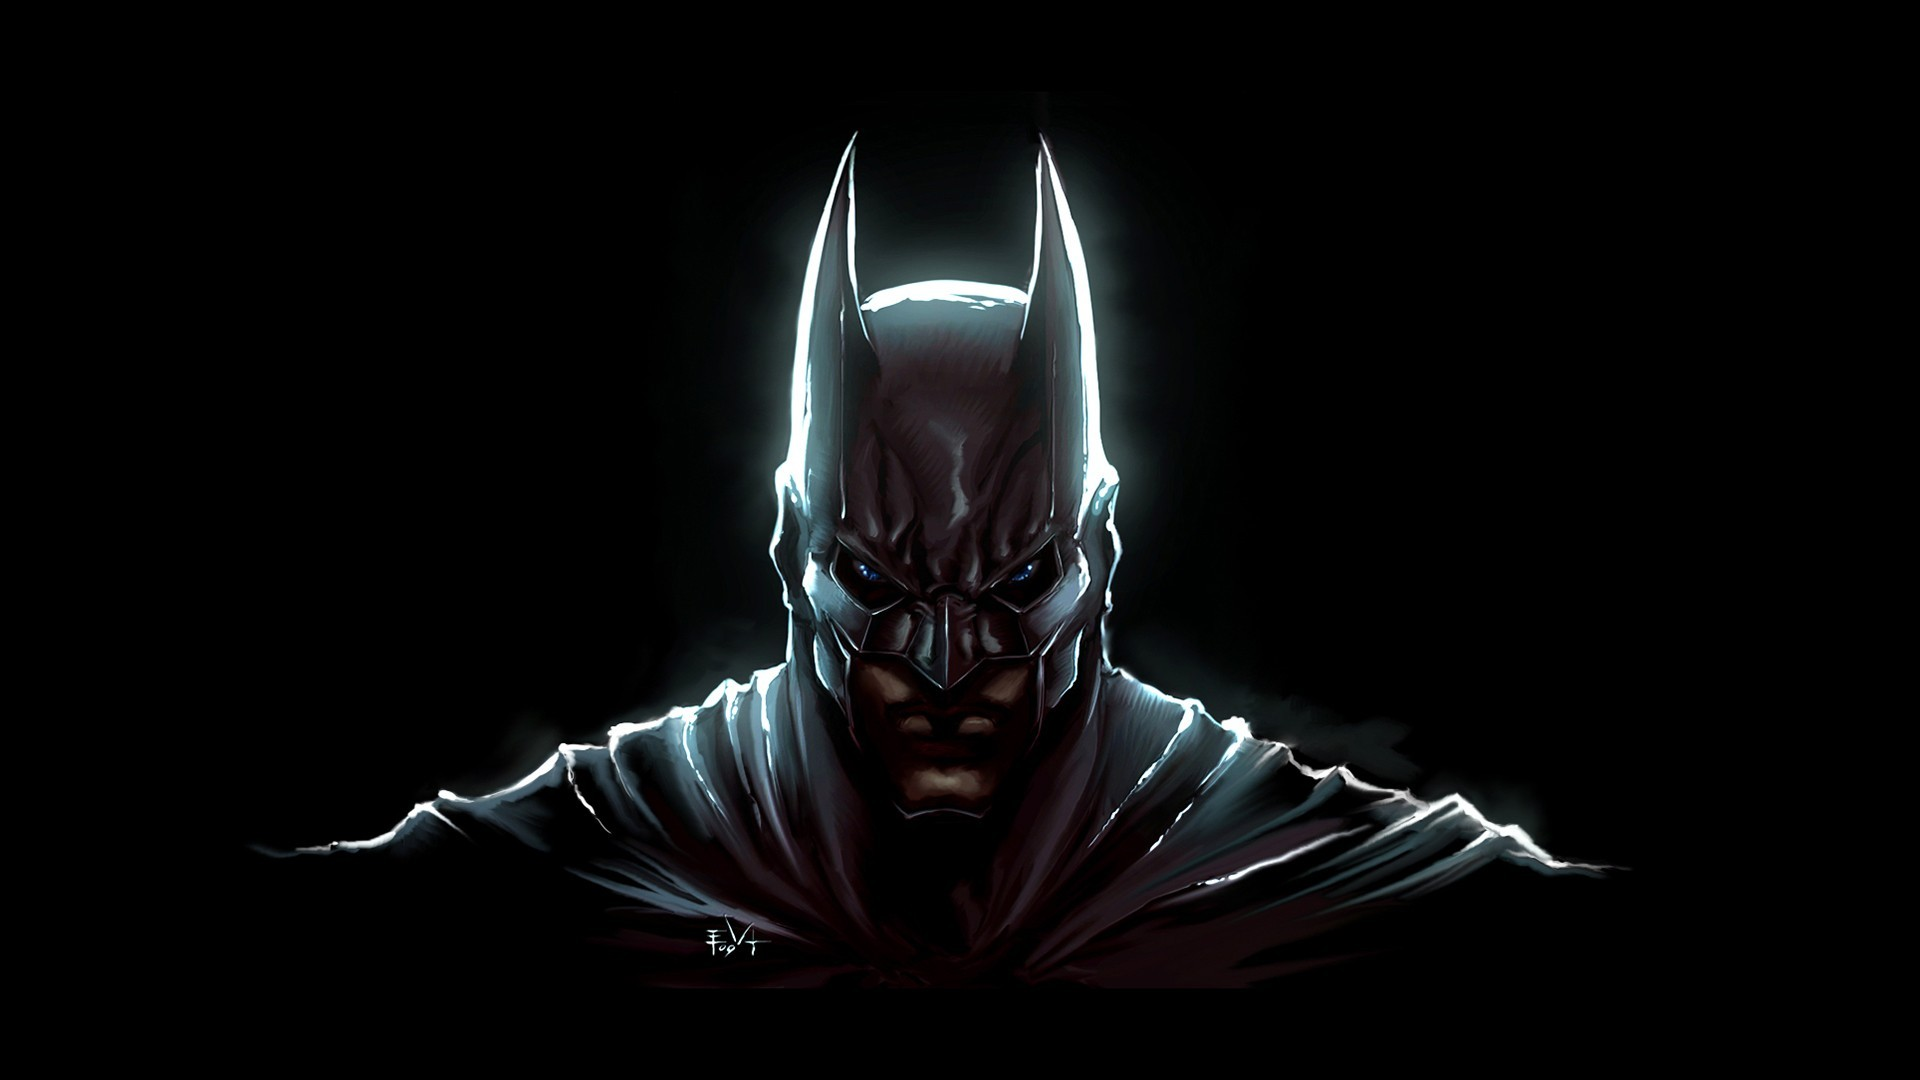 Batman digital art wallpaper allwallpaper 14138 pc en batman digital art wallpaper voltagebd Choice Image